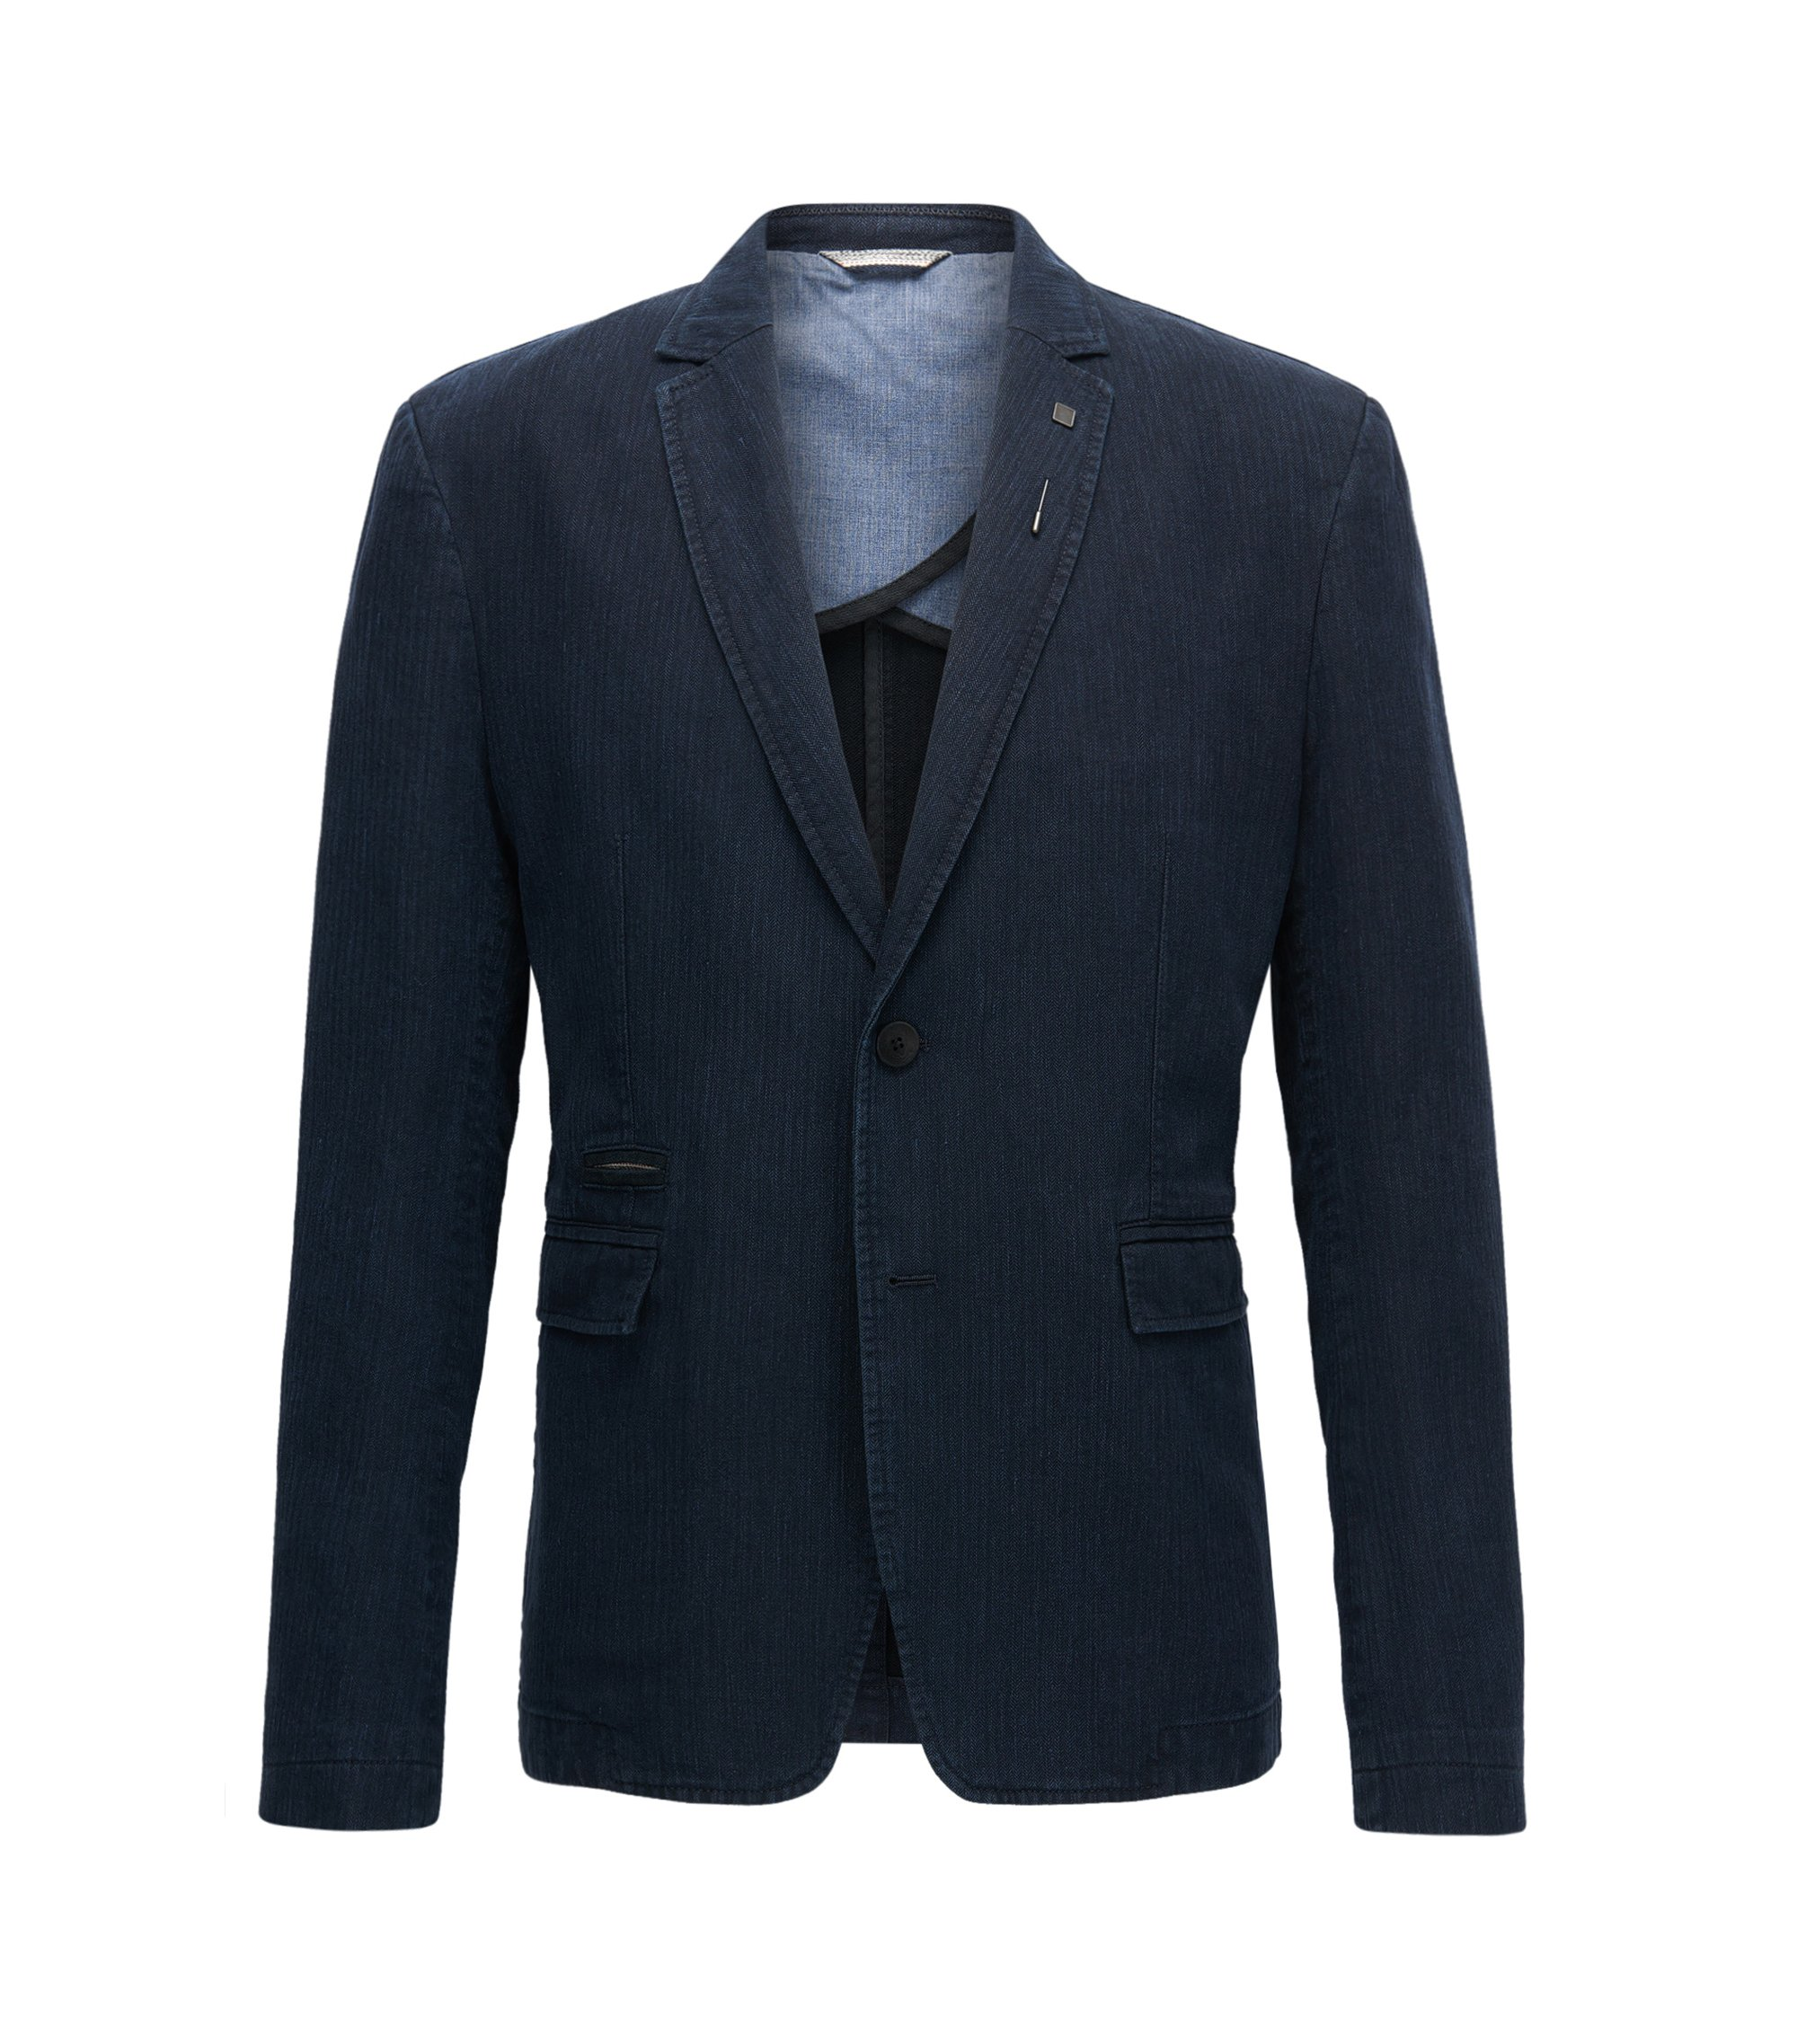 Herringbone Cotton Linen Sport Coat, Slim Fit | Baxed, Dark Blue